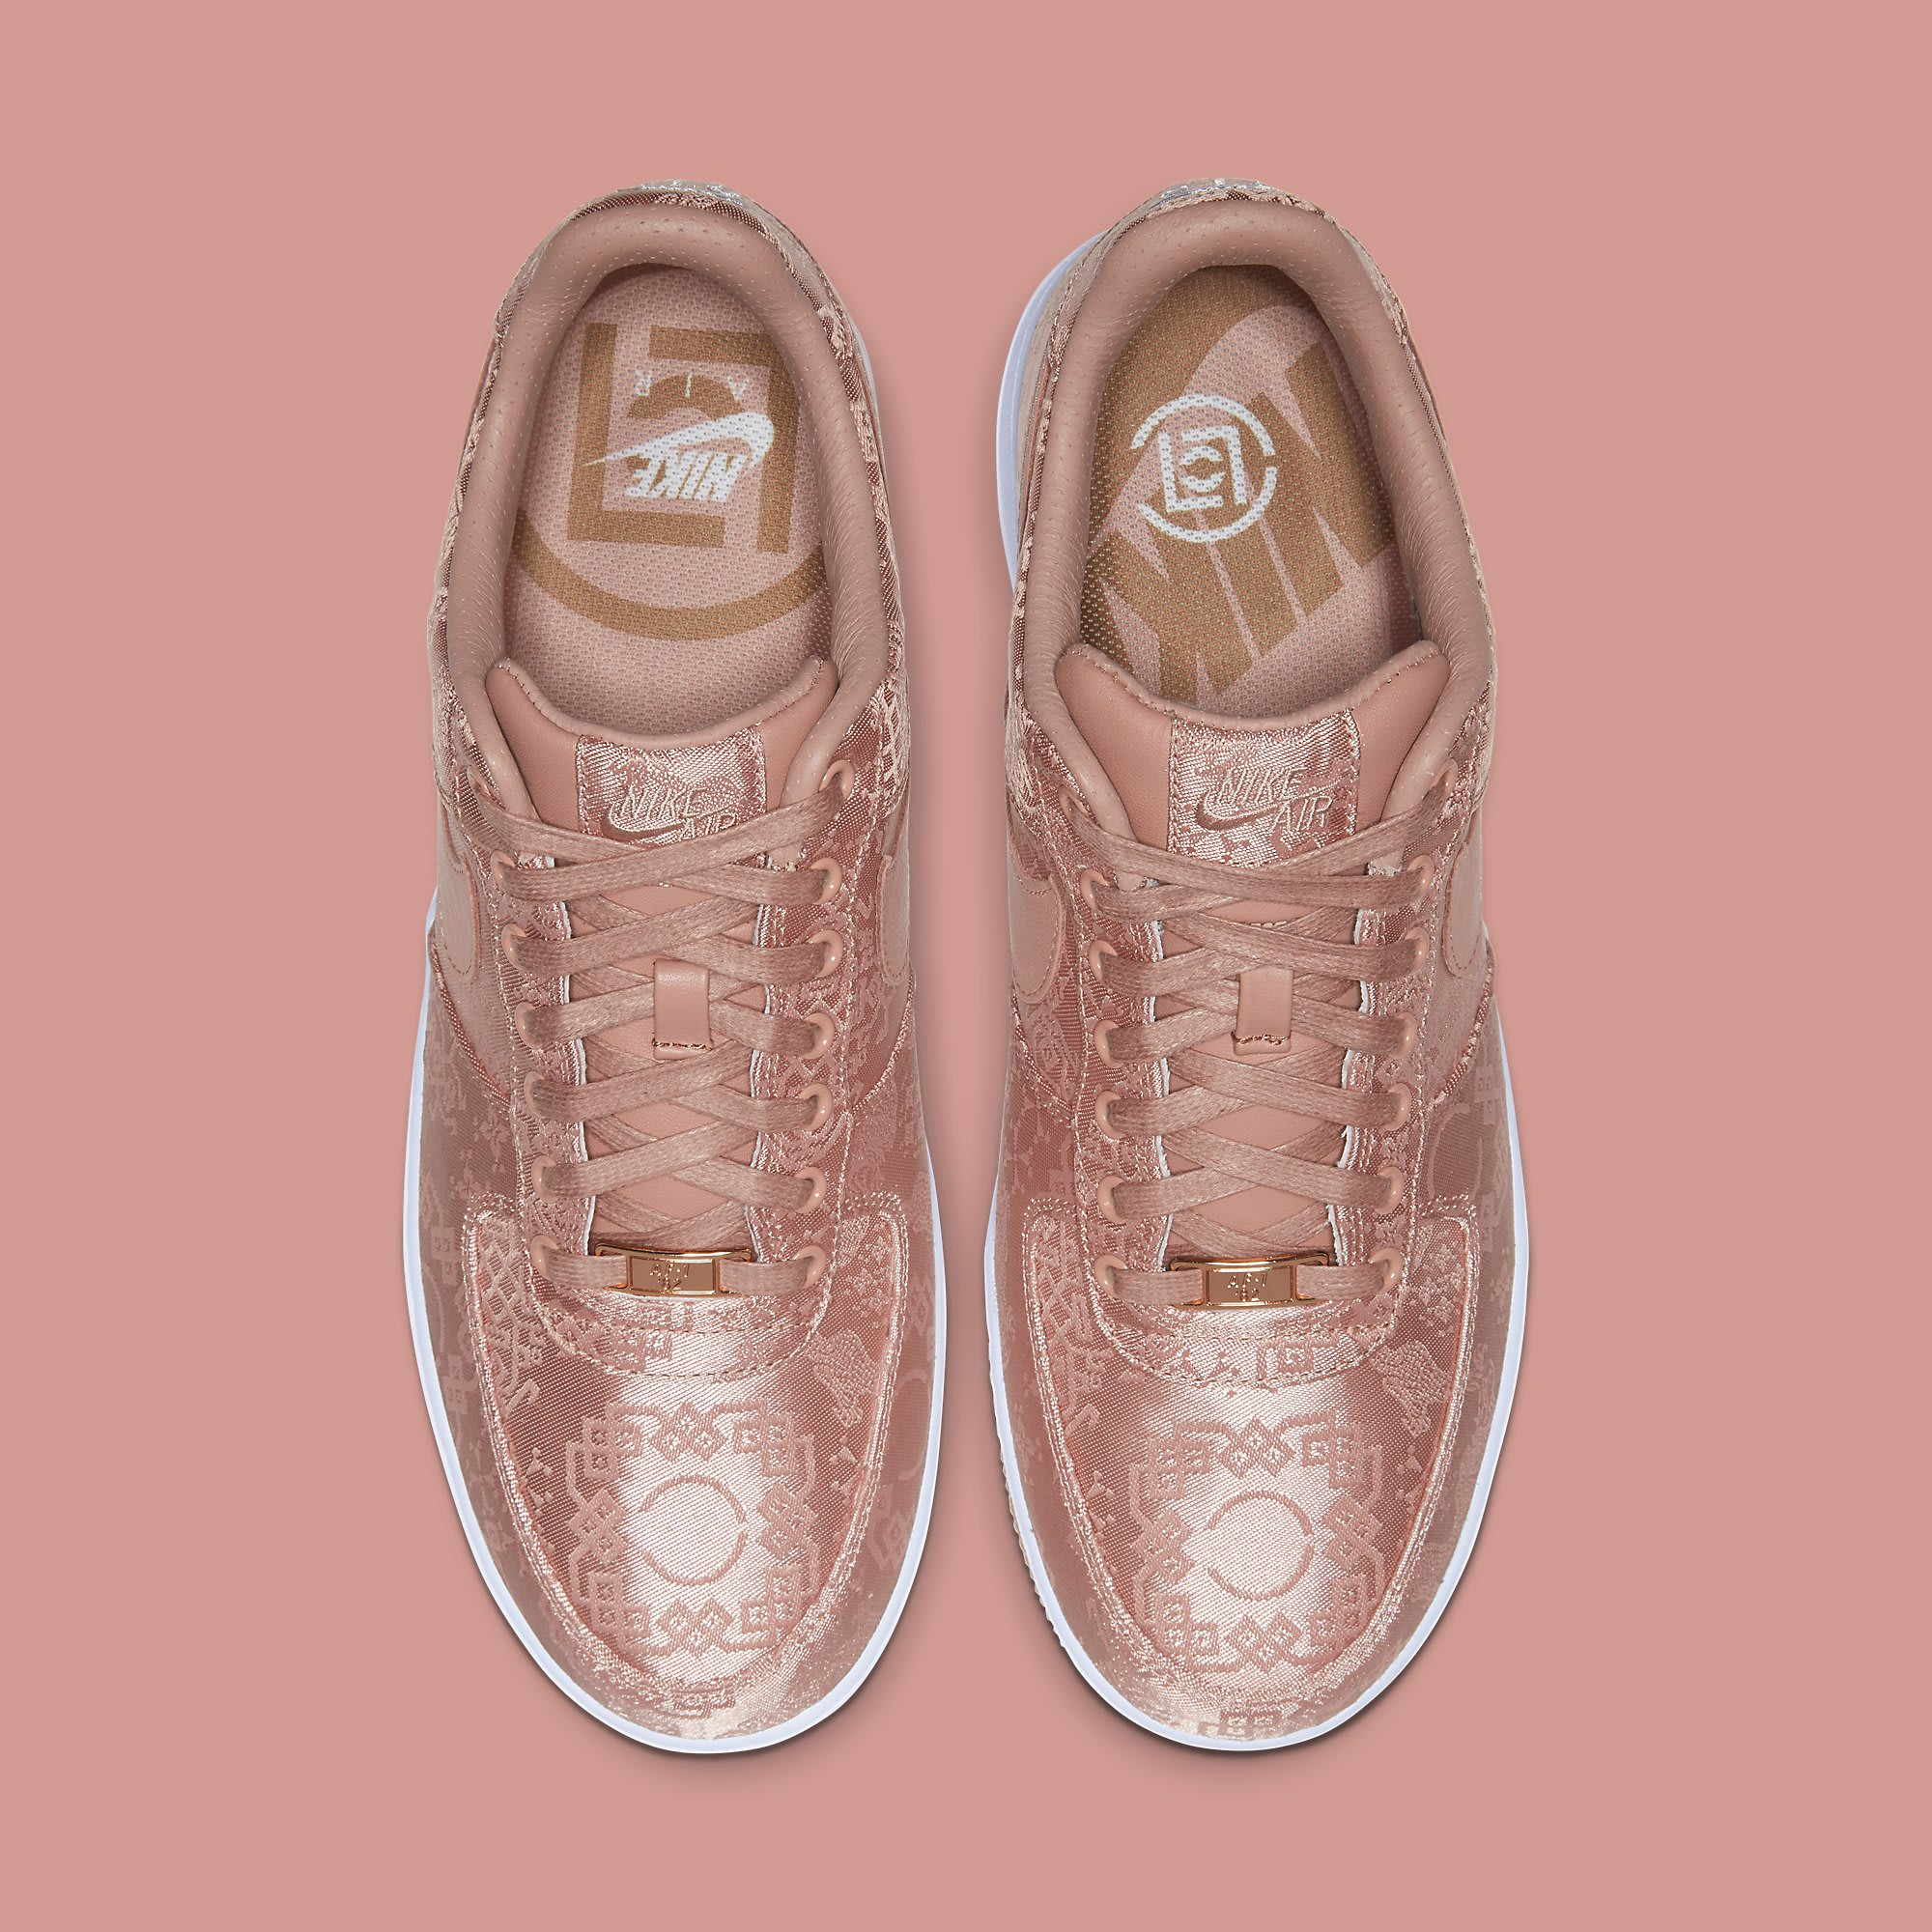 Clot x Nike Air Force 1 Rose Gold Release Date CJ5290-600 Top